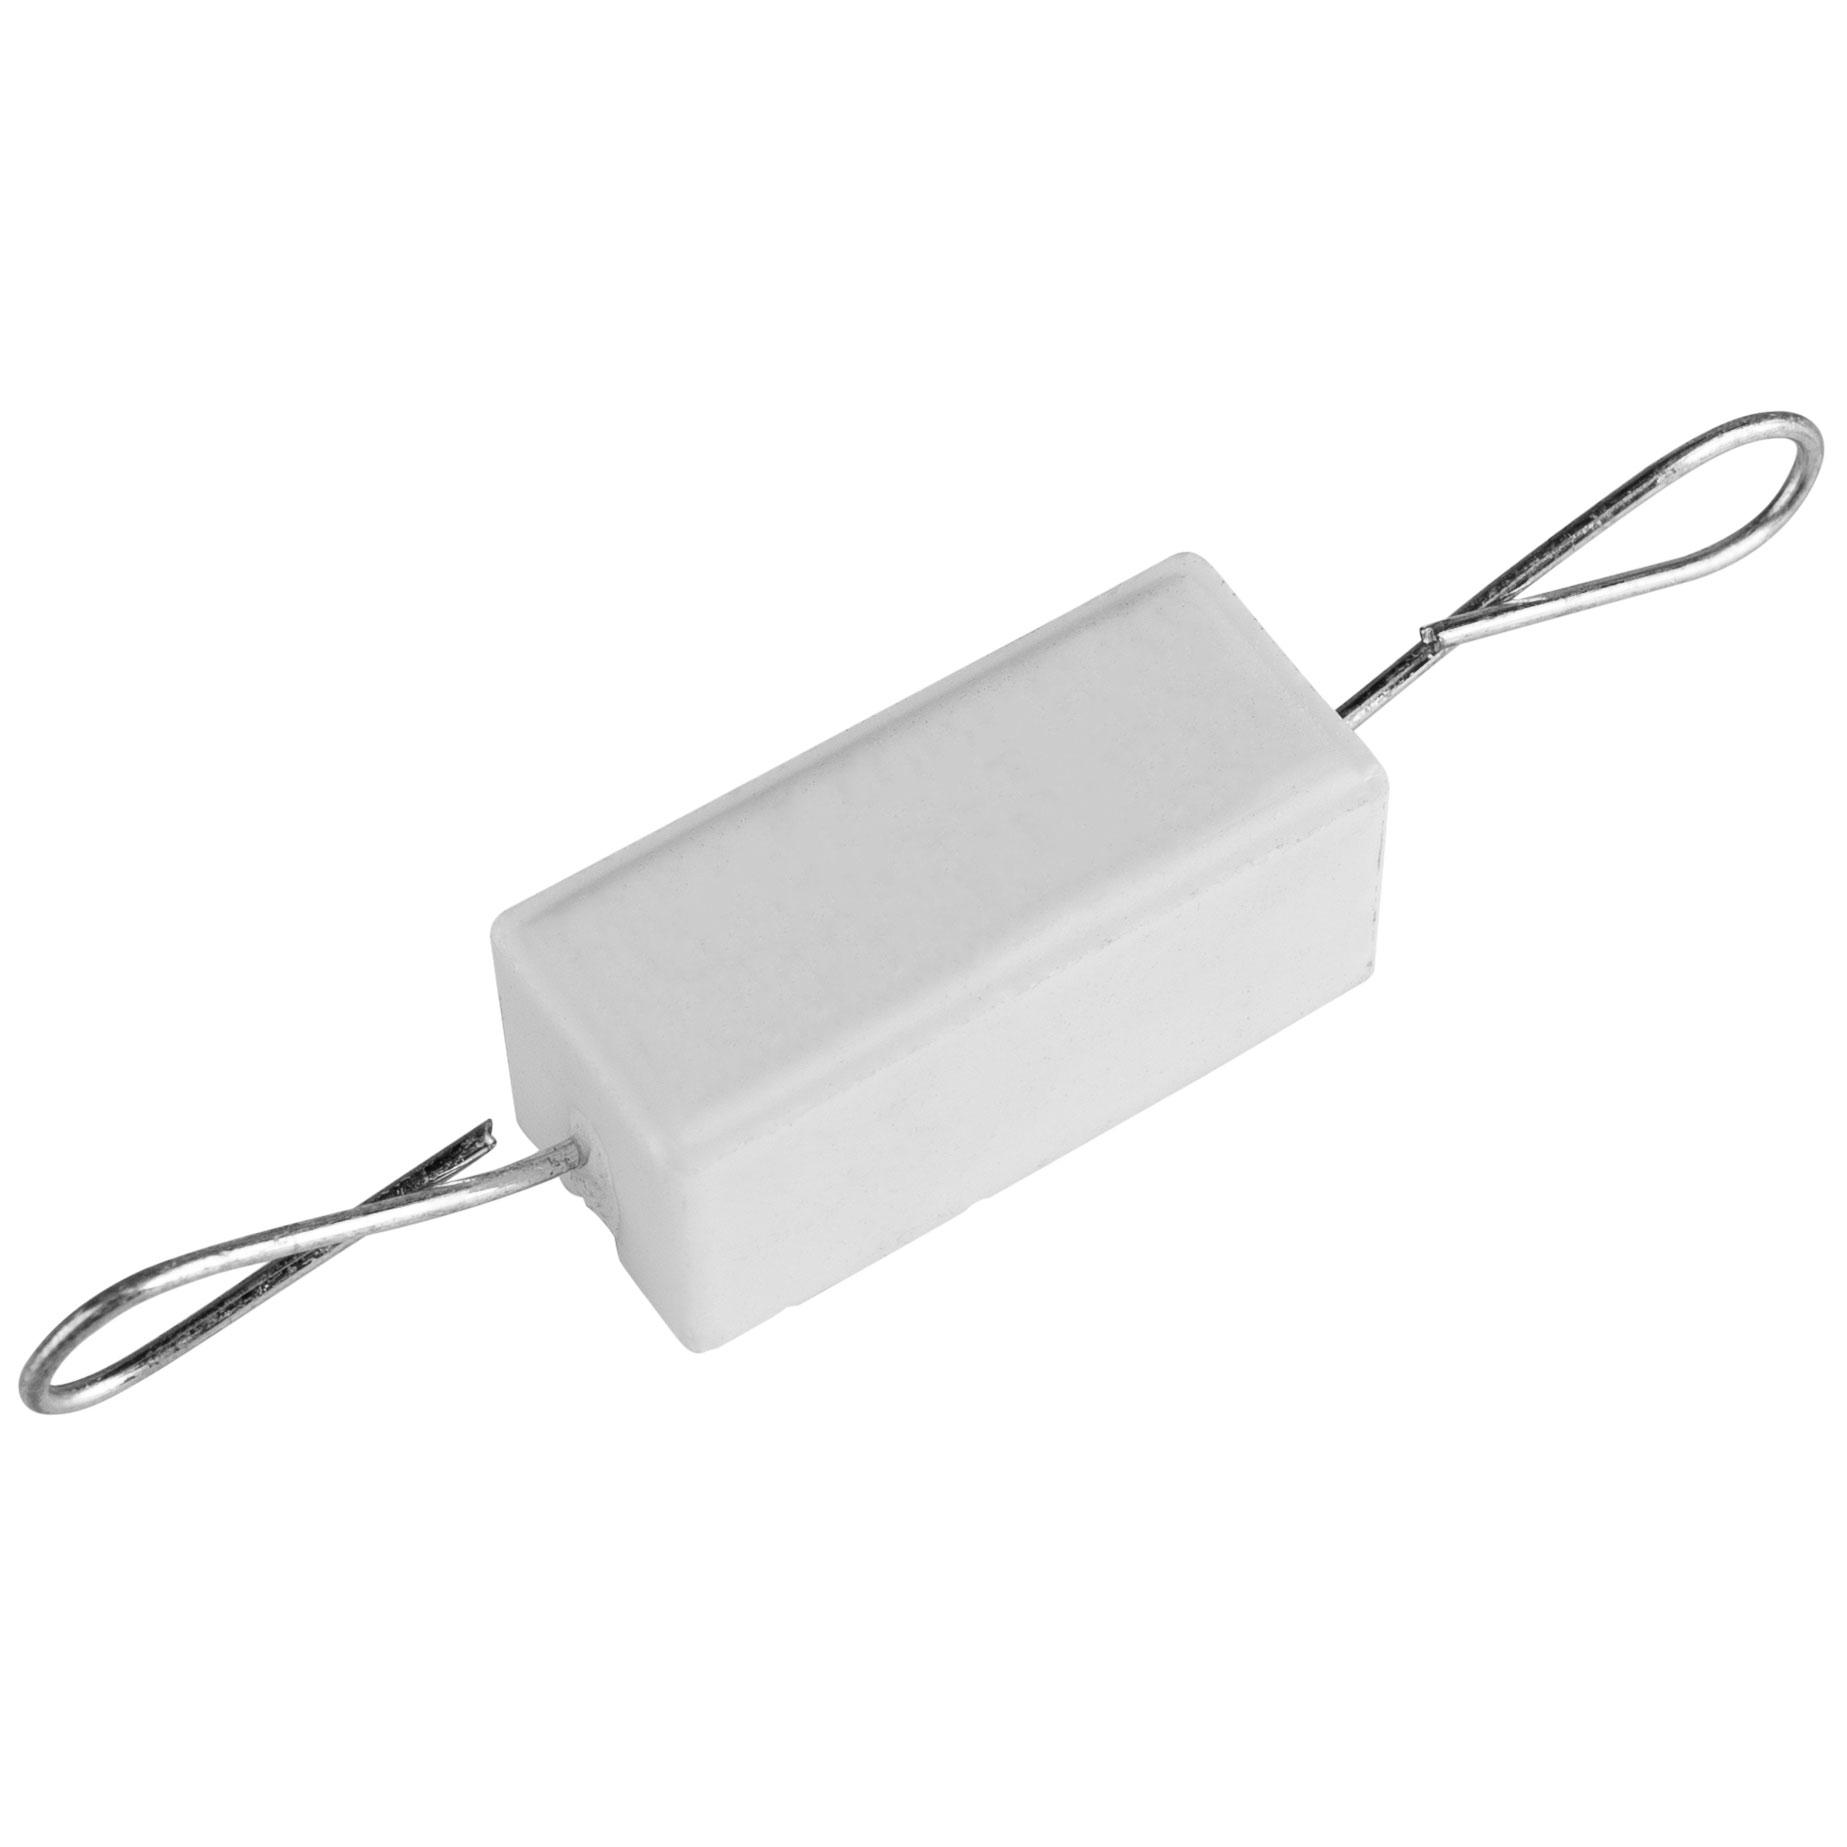 Pack of 5 - Resistor 120 Ohm Resistance - 5W